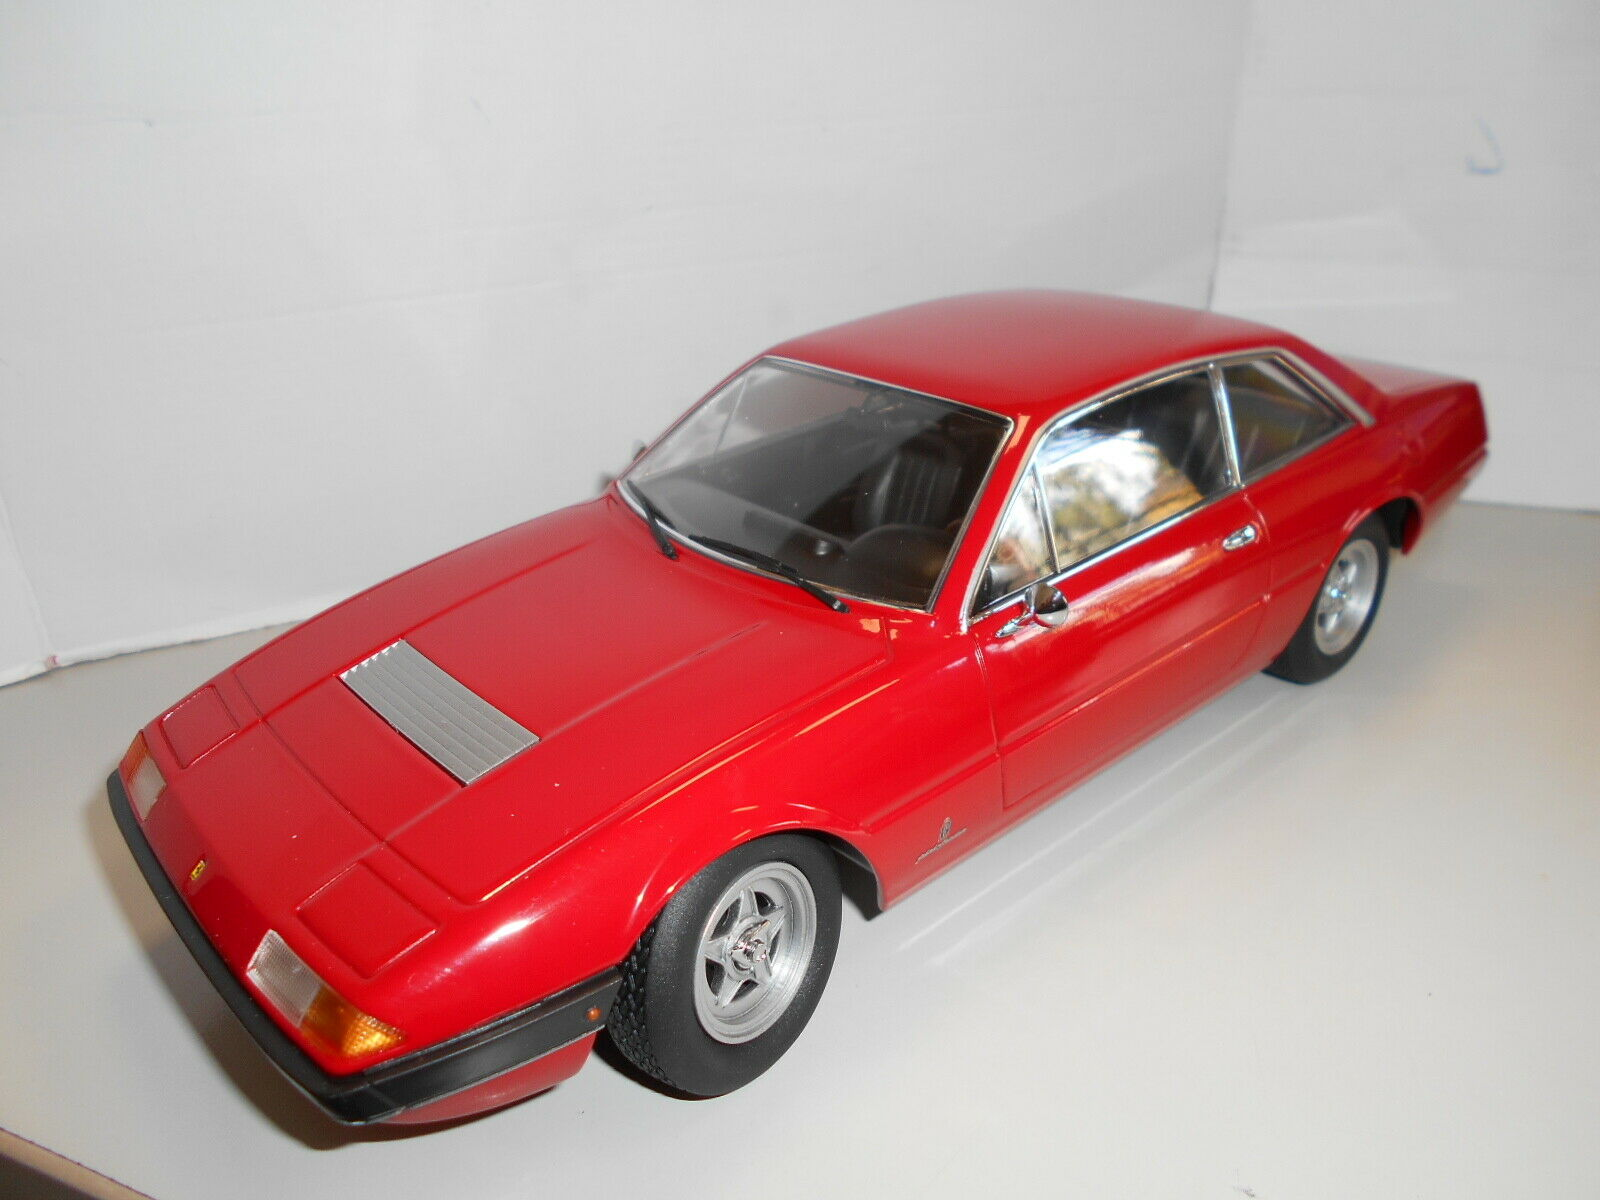 KKDC180161 by KK-SCALE FERRARI 365 GT4 2+2 1972 1 18